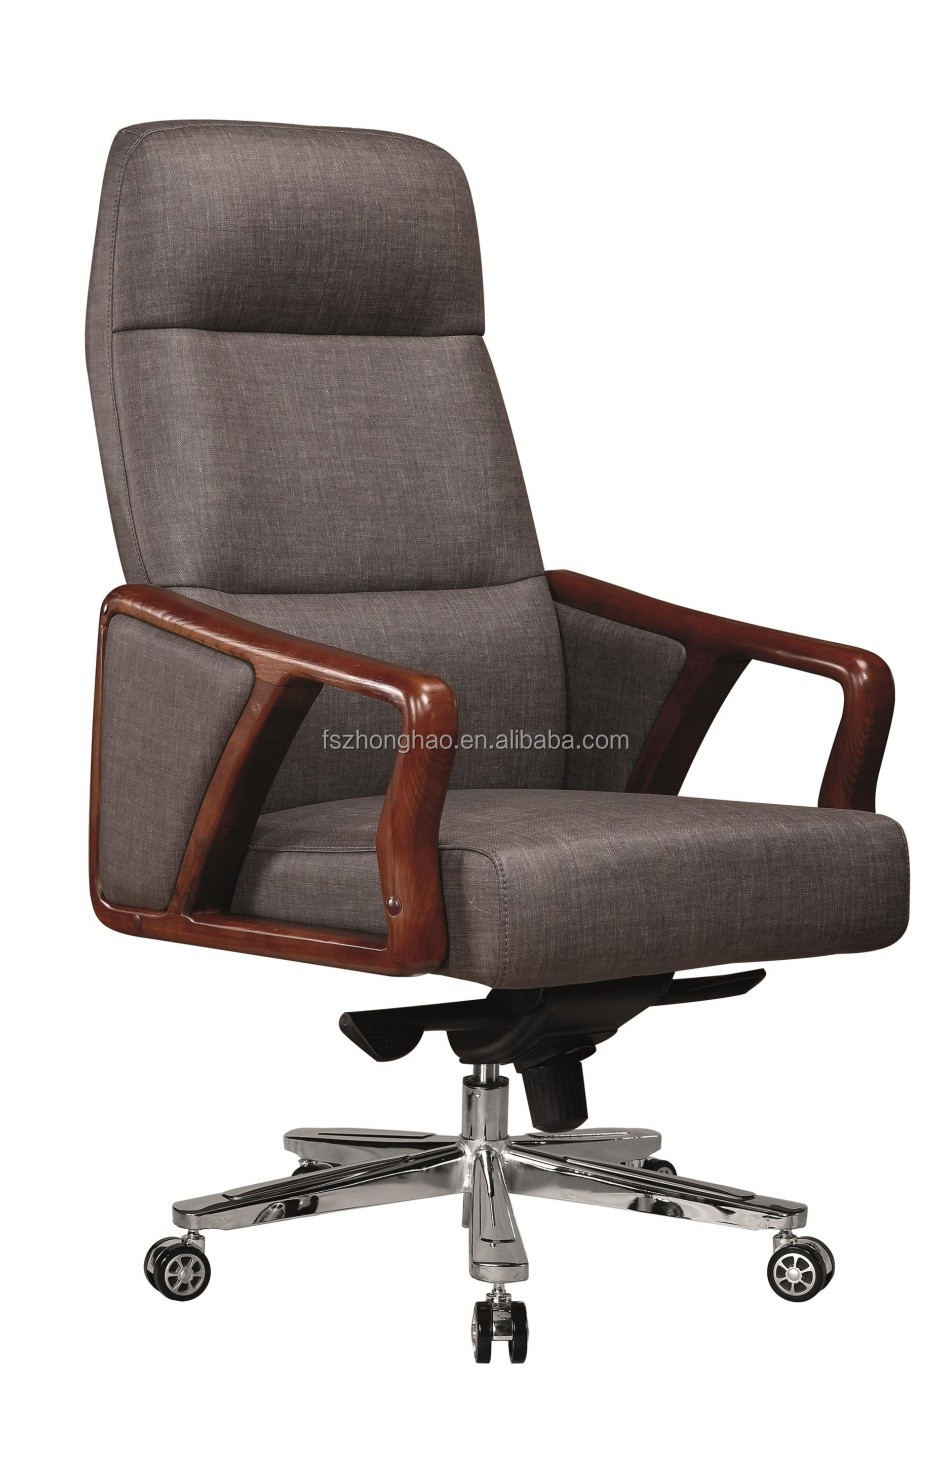 Leather Executive Swivel Chairs Professional Office Chair Buy Heated Office